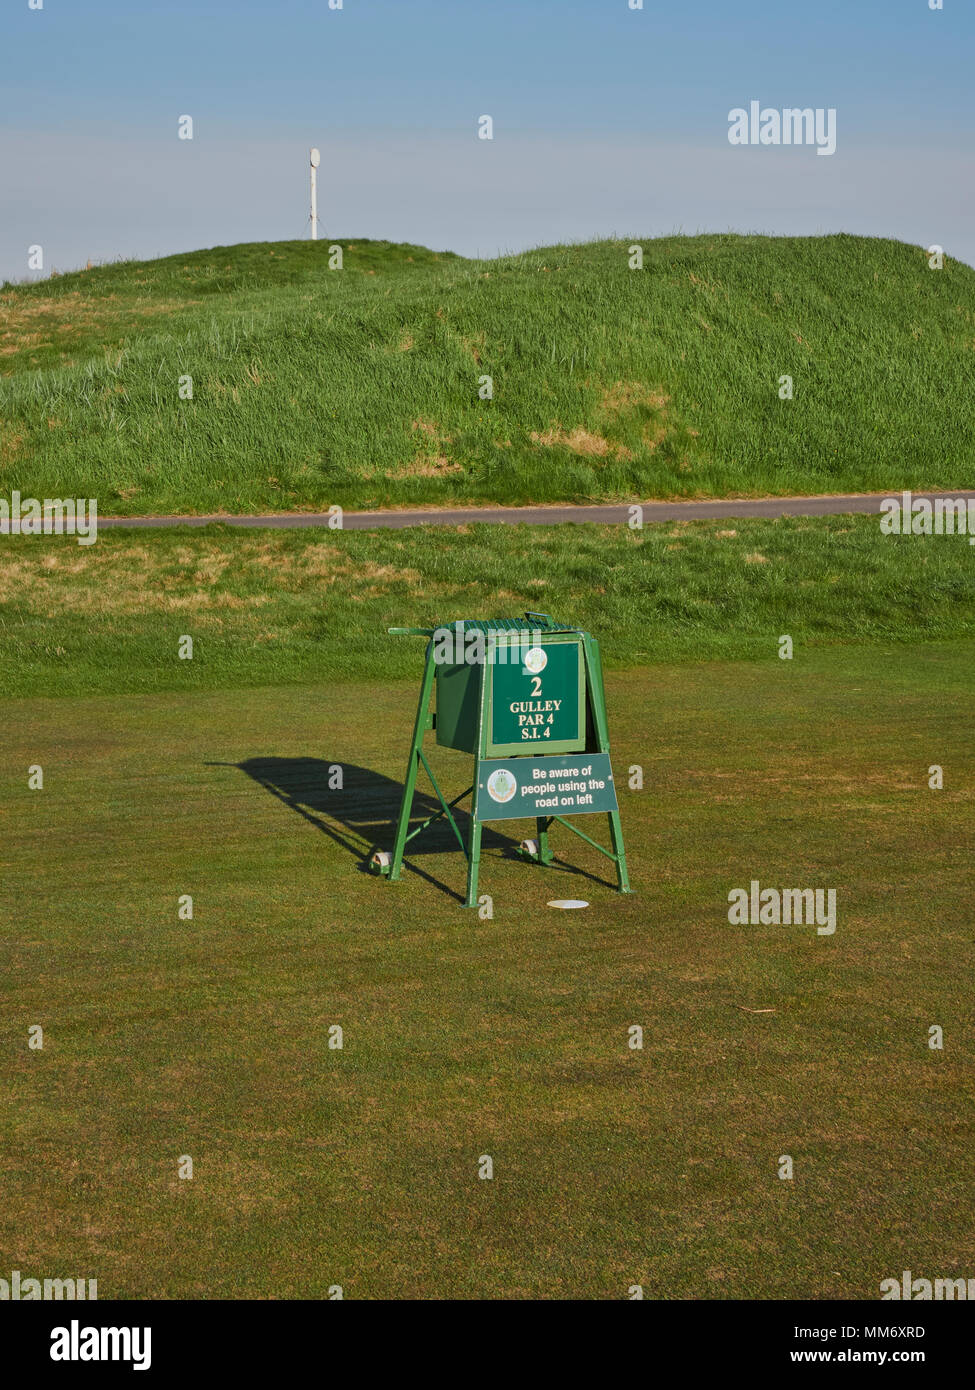 the Tee Box at the Par 4 second hole on the Championship Course at Carnoustie Golf Links, in Carnoustie, Angus, Scotland. - Stock Image